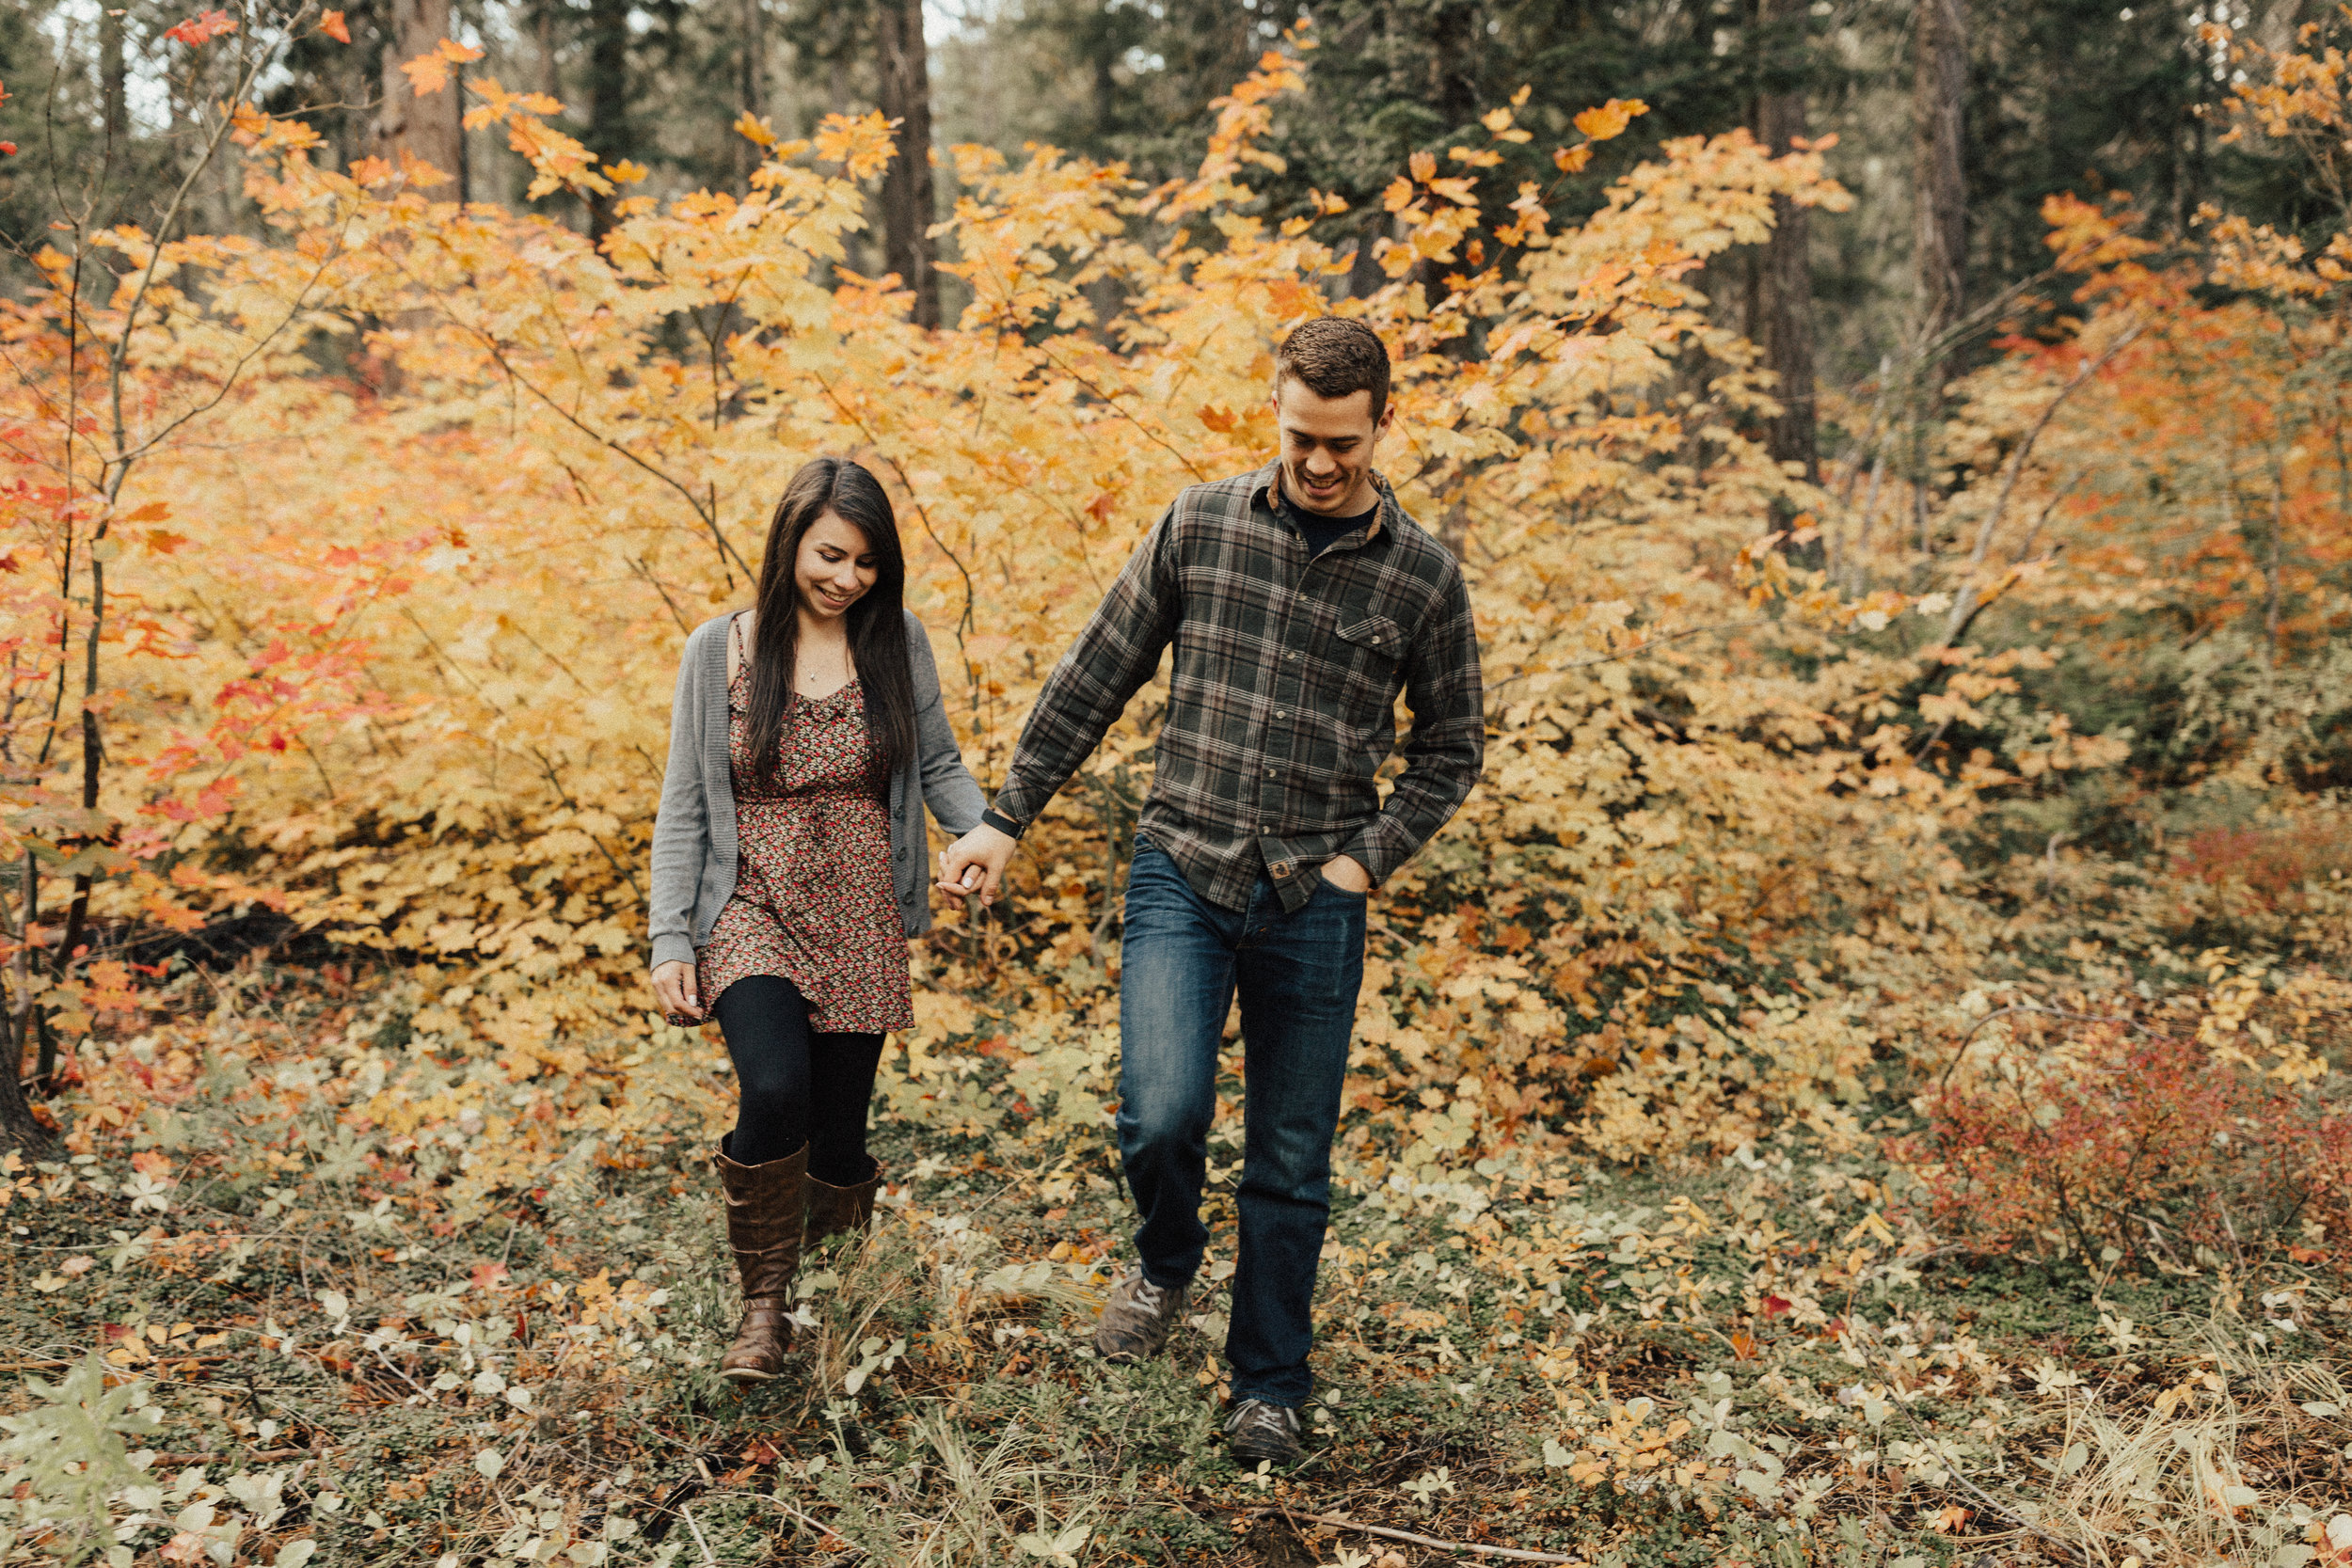 Warren did such an excellent job on our engagement photos! Not only does he have an incredible talent for capturing perfect little moments, but he really goes the extra mile. My fiance and I were prepared to drive 8 hours roundtrip to meet him on the westside, but Warren suggested a place halfway in-between, which was so much easier! He let us bring our dogs and we got to capture a lot of great moments despite the cold wind. Truly grateful that he was not only willing to do all of that for us, but even suggested it himself. We are so excited for him to do our wedding pictures this next year! - Melissa & Zach